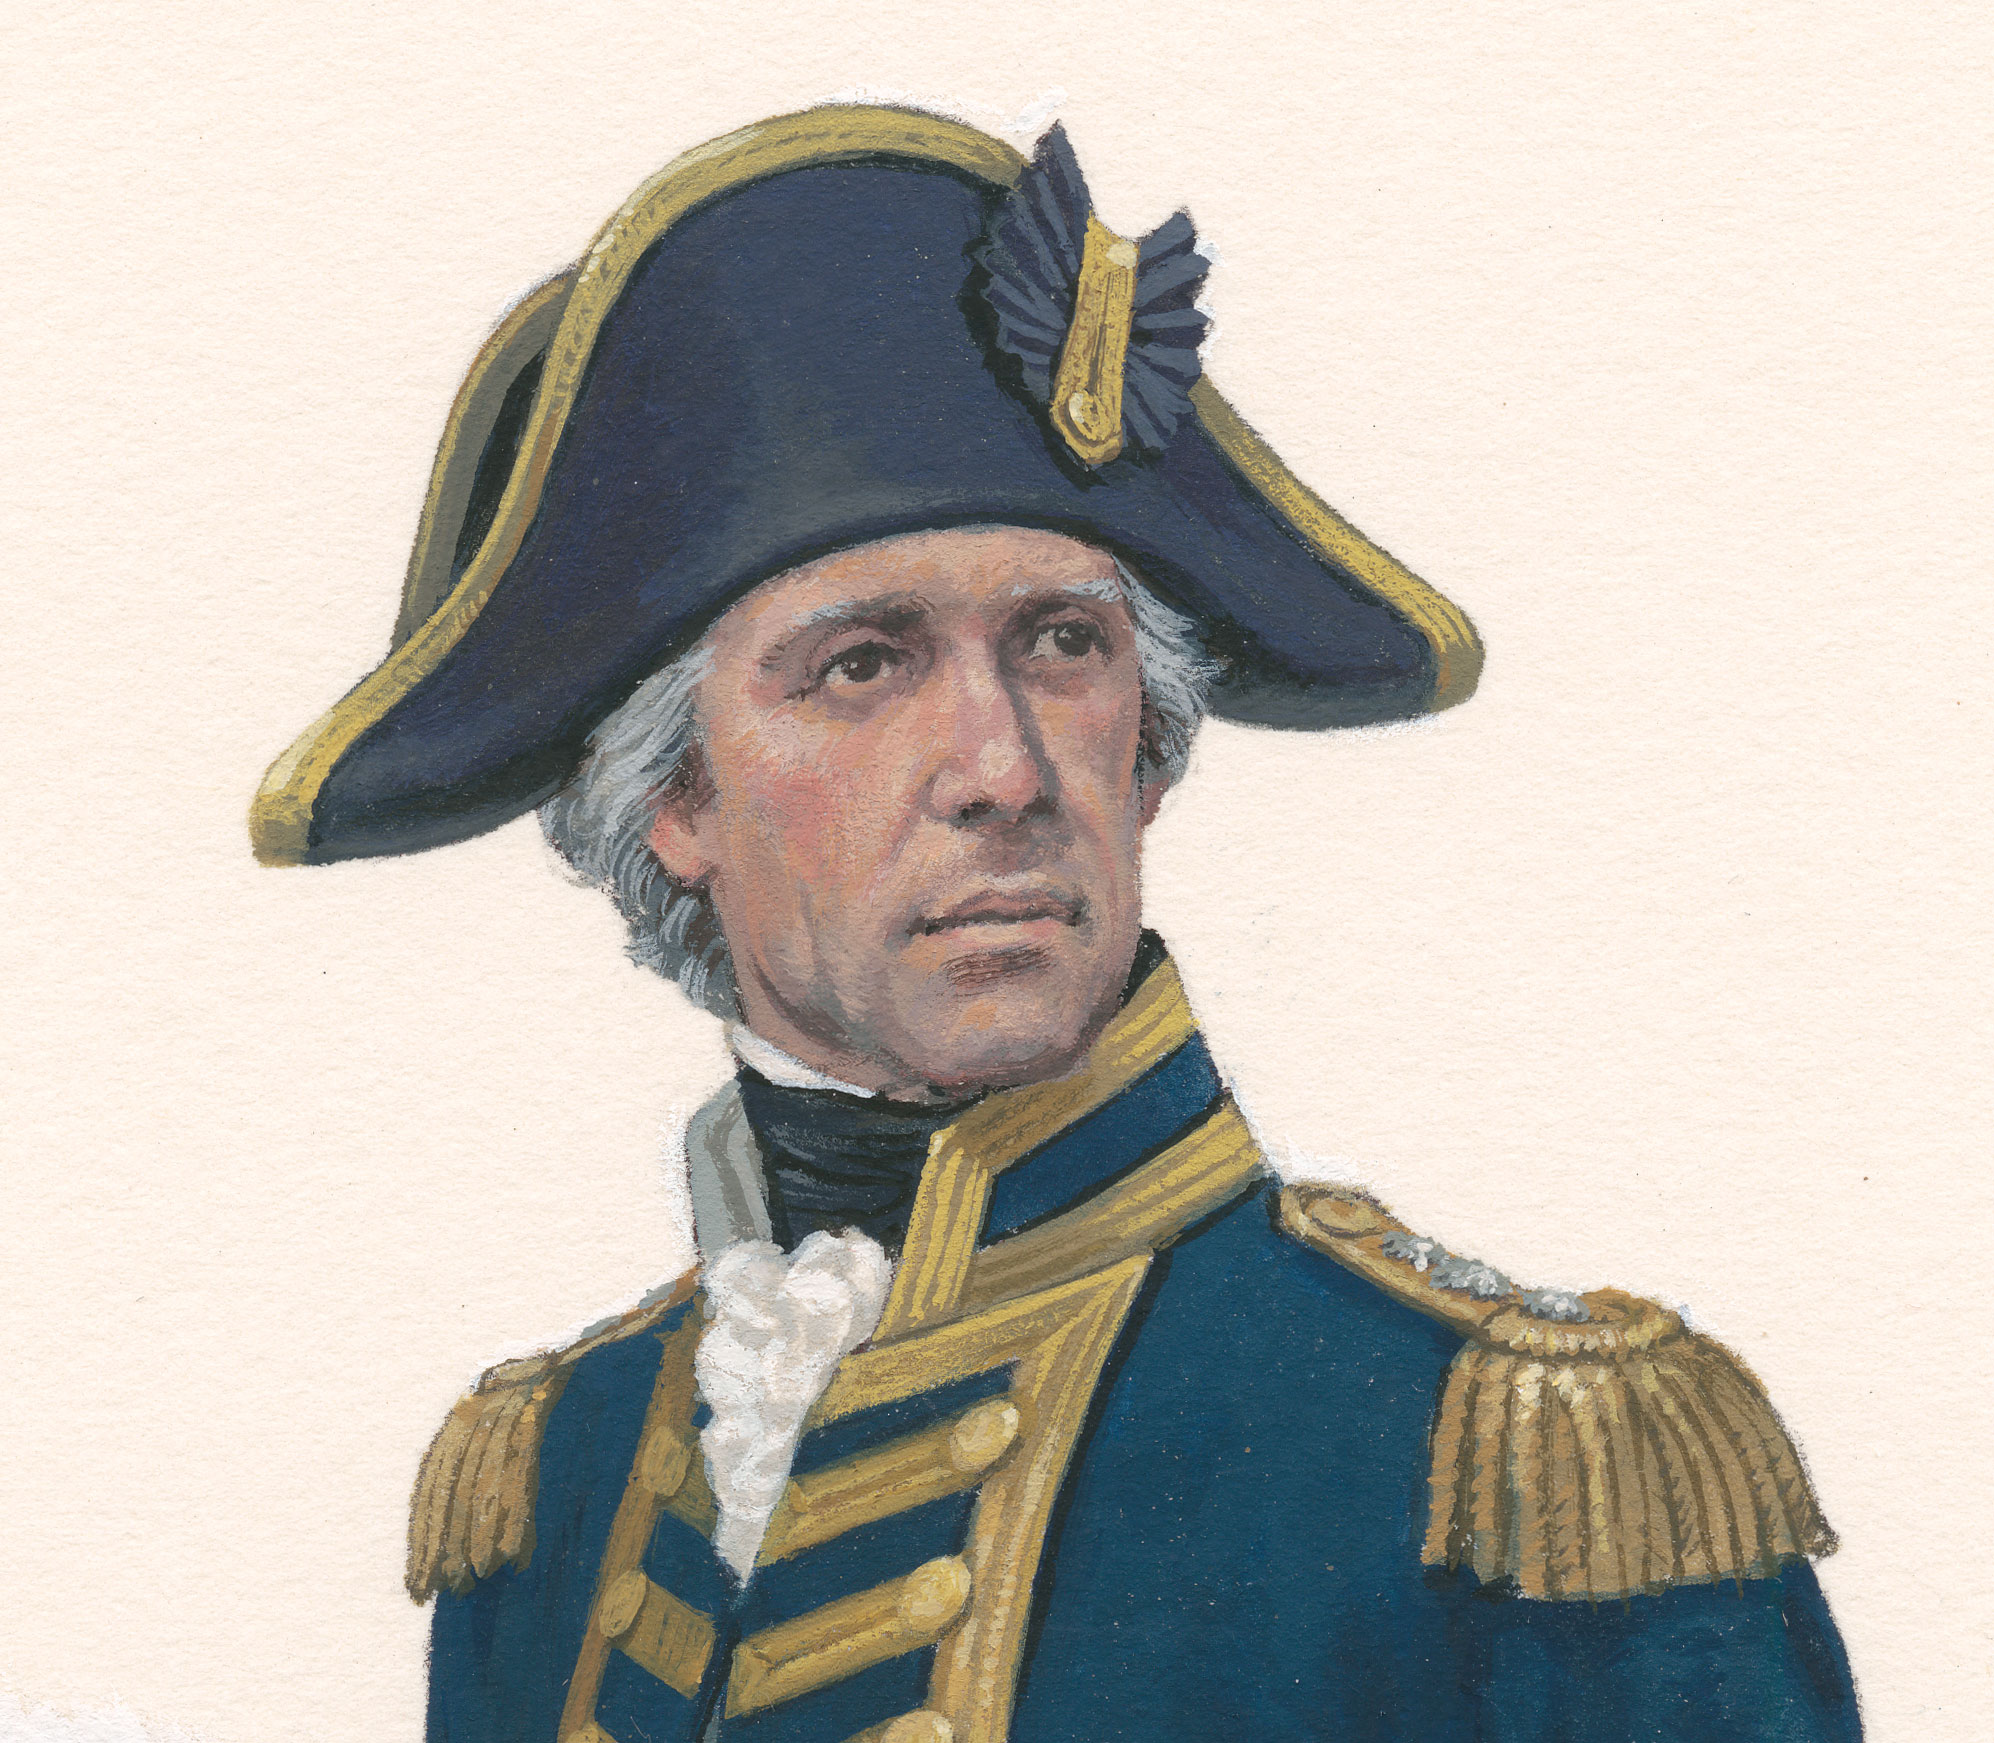 A painting of the head and shoulders of an Navy Admiral with blue and gold hat.